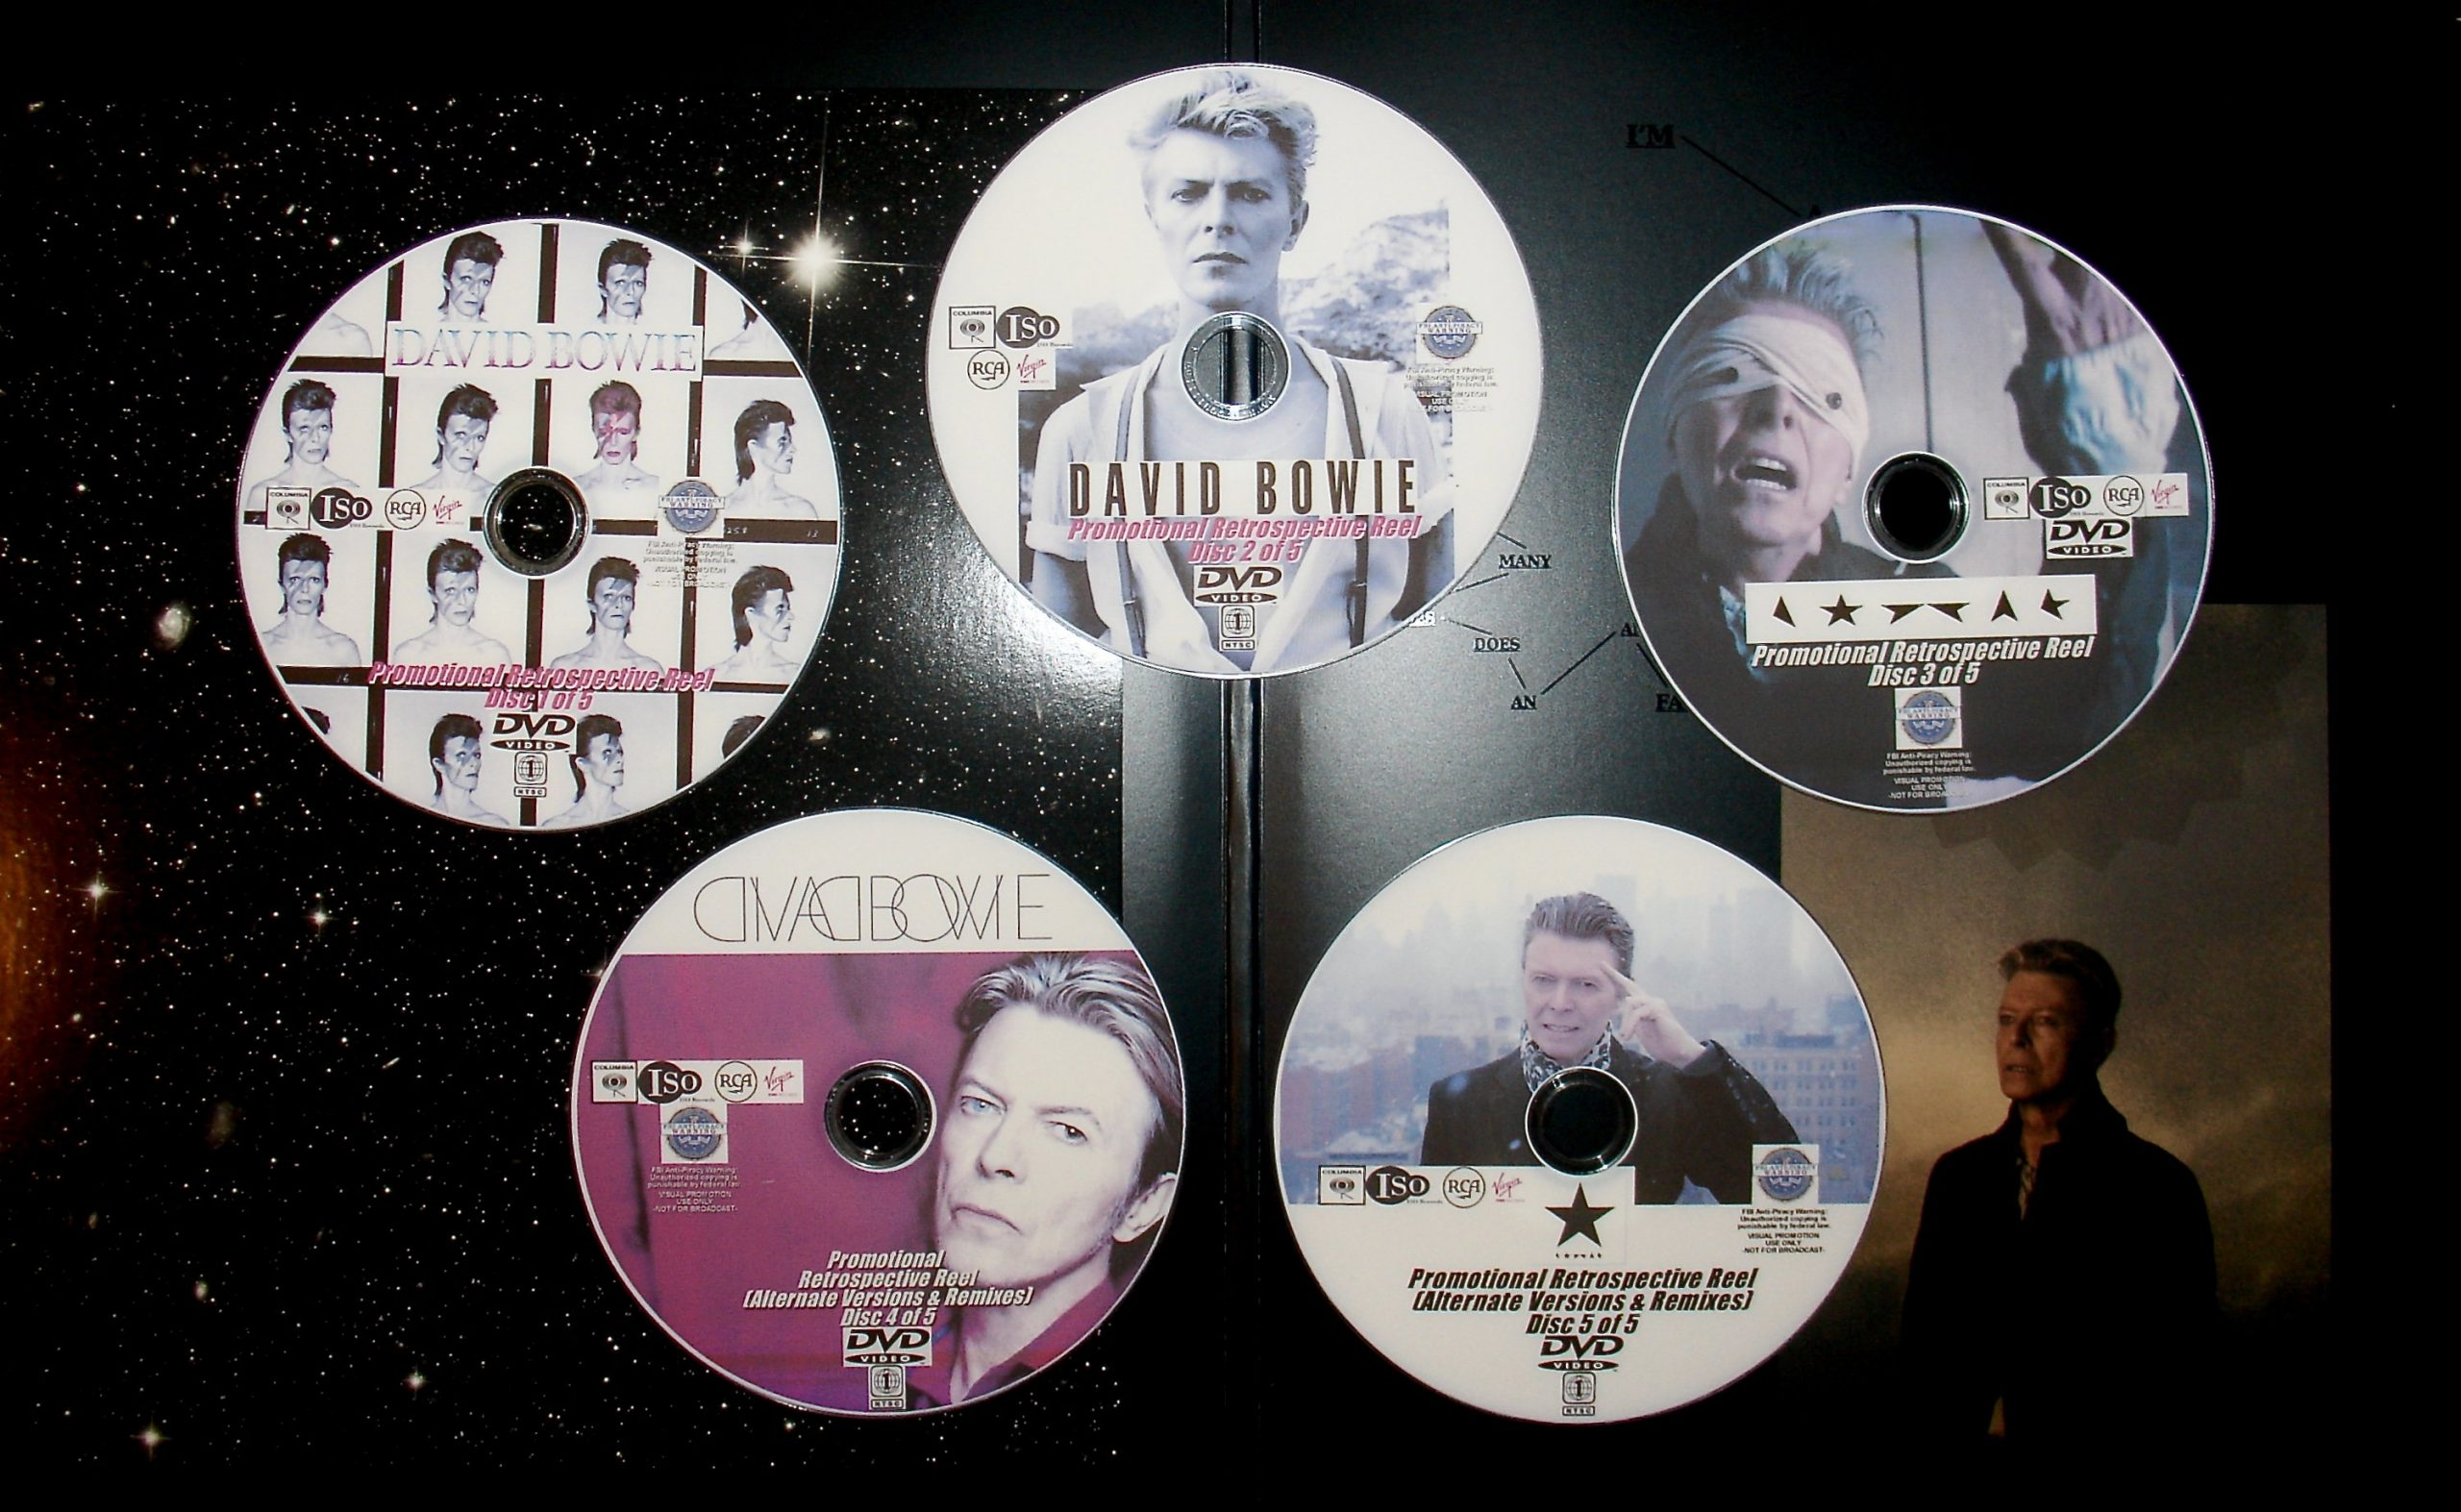 DAVID BOWIE Promotional Retrospective MUSIC VIDEO Reel 1967-2016 5 DVD Set (Featuring Tin Machine, Pat Metheny Group, Mick Jagger, Placebo, Pet Shop Boys and MORE)